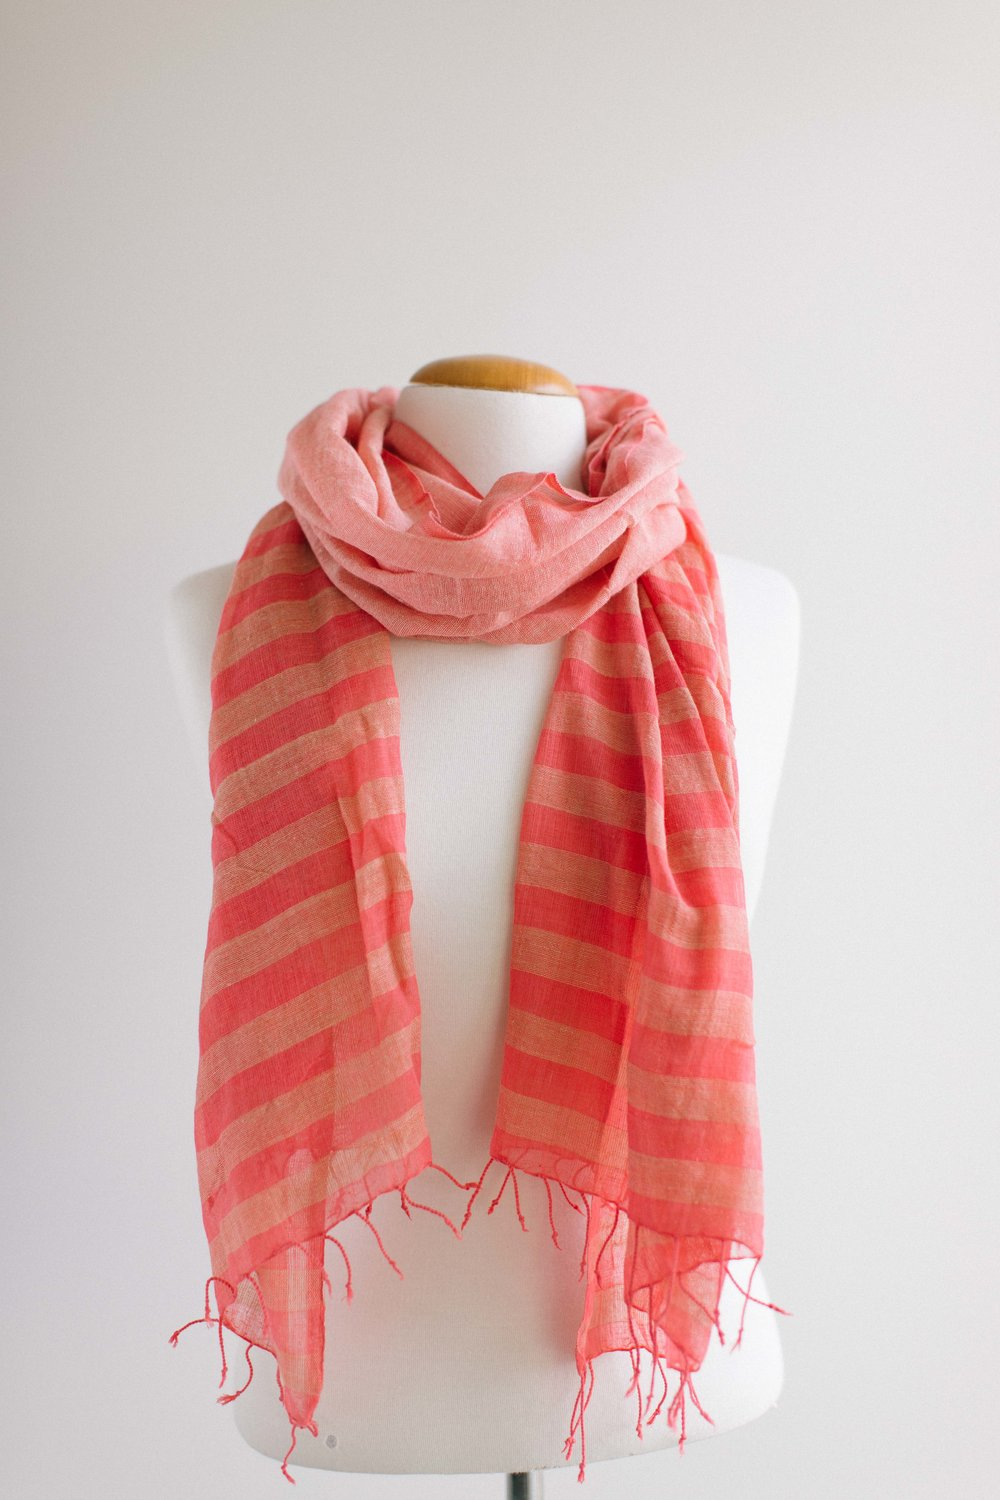 Addis Rose red with Camel.jpg